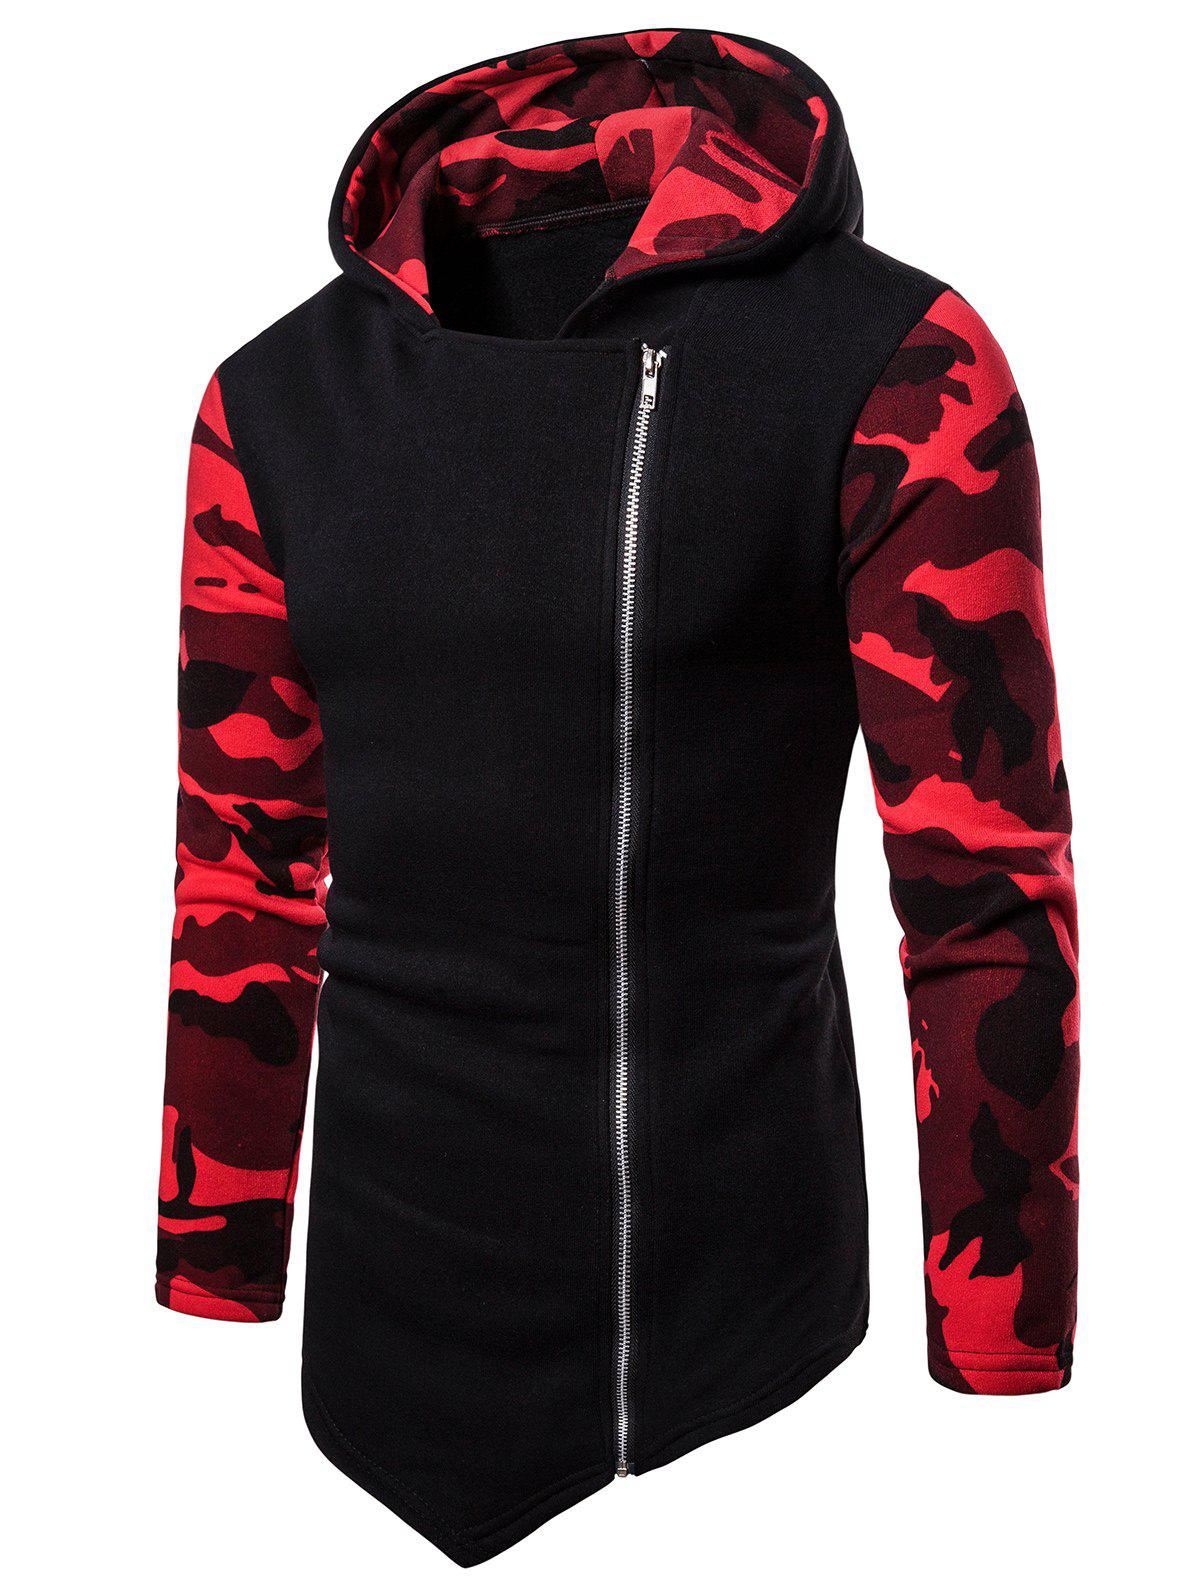 Unique Asymmetric Zip Up Camo Panel Hoodie